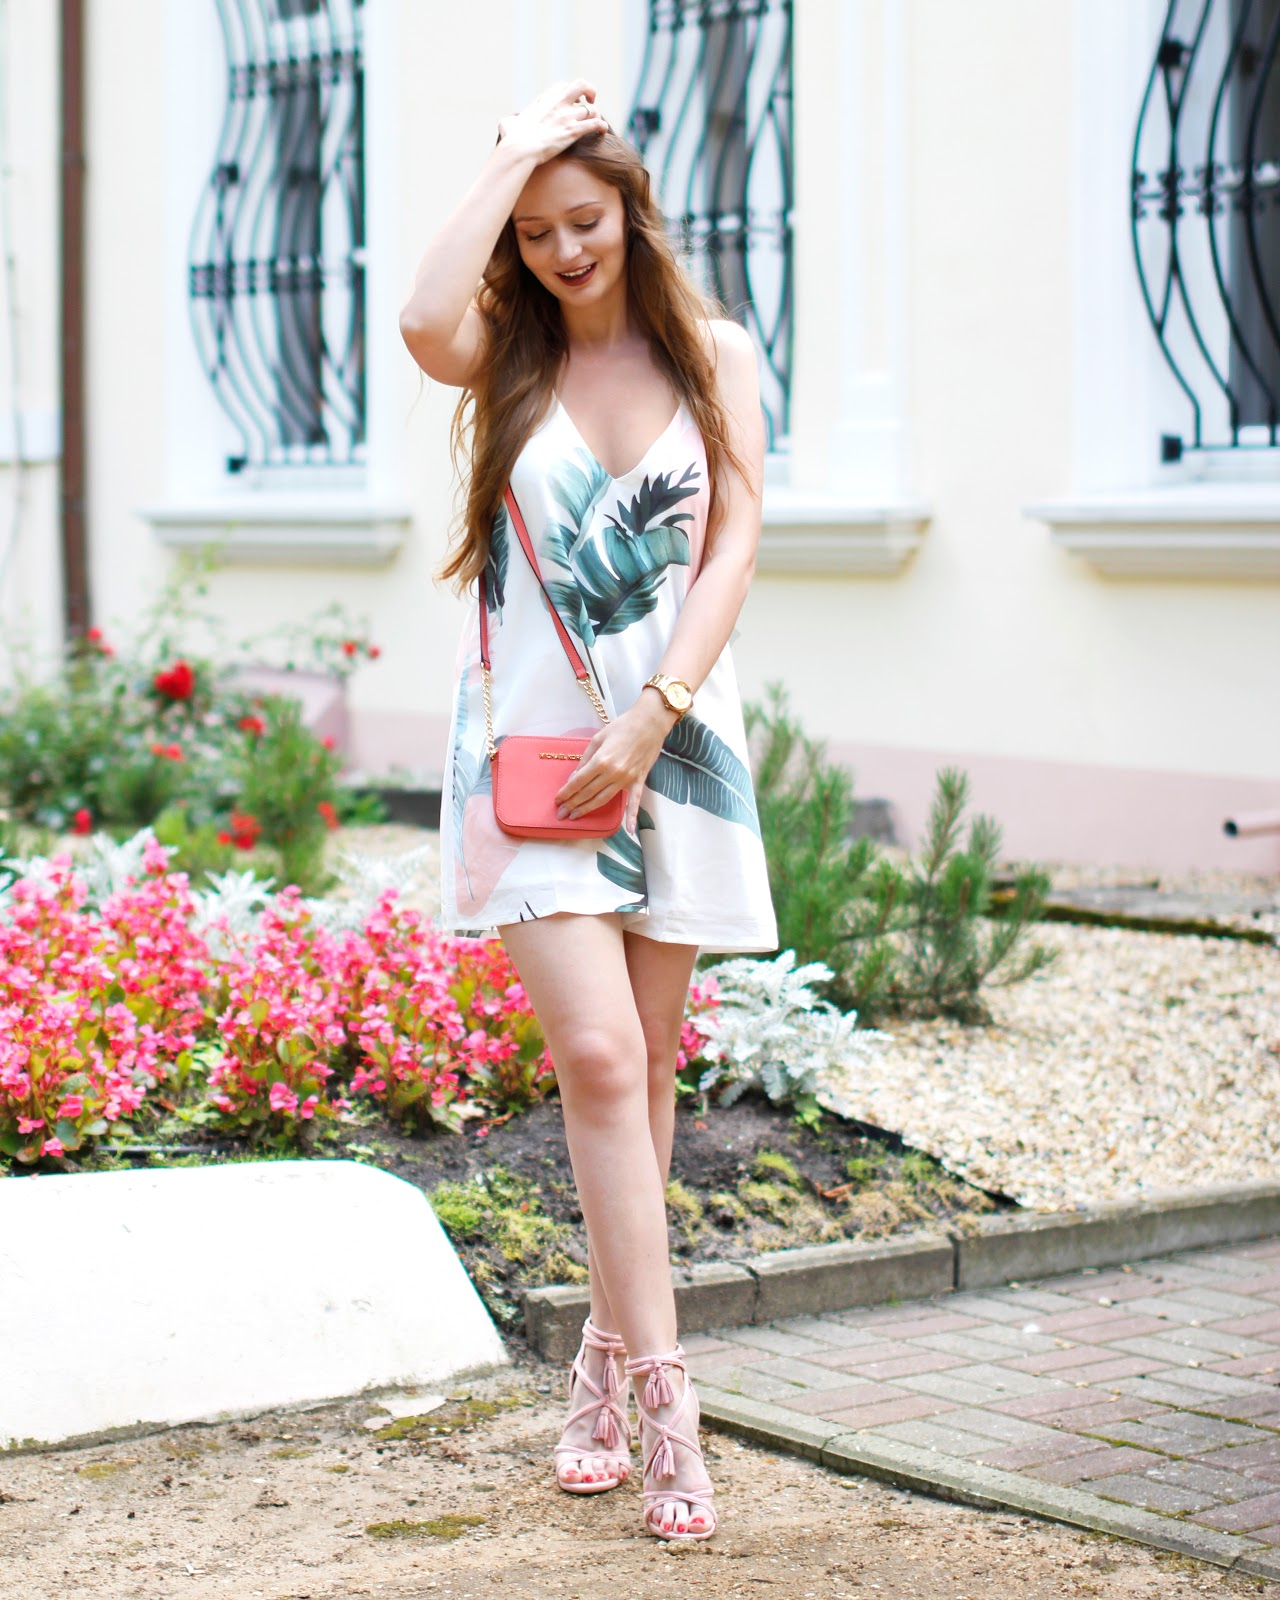 Tropical dress #OUTFIT